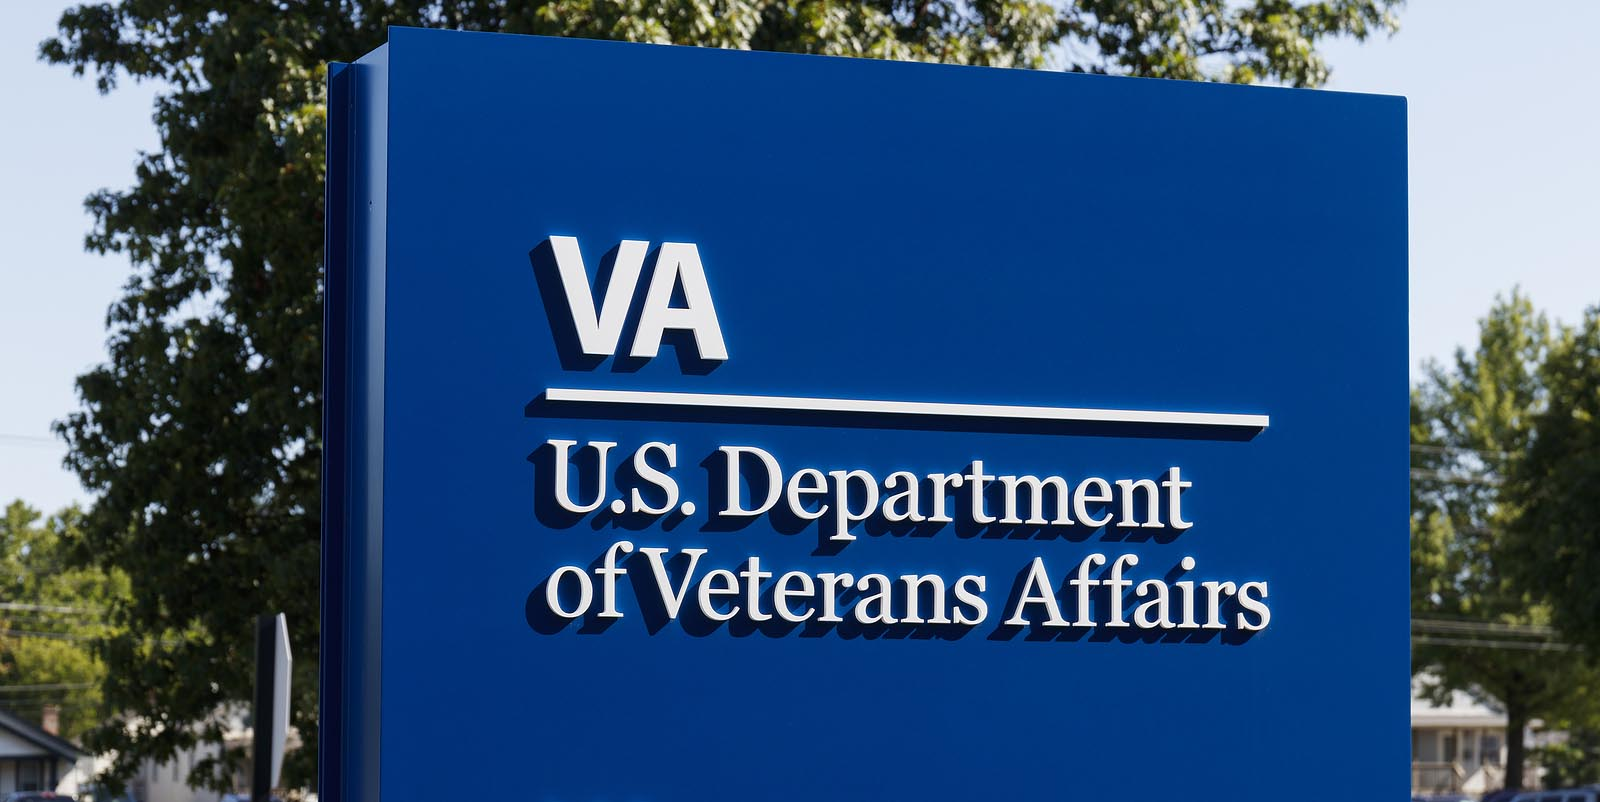 Sign for US Department of Veterans Affairs